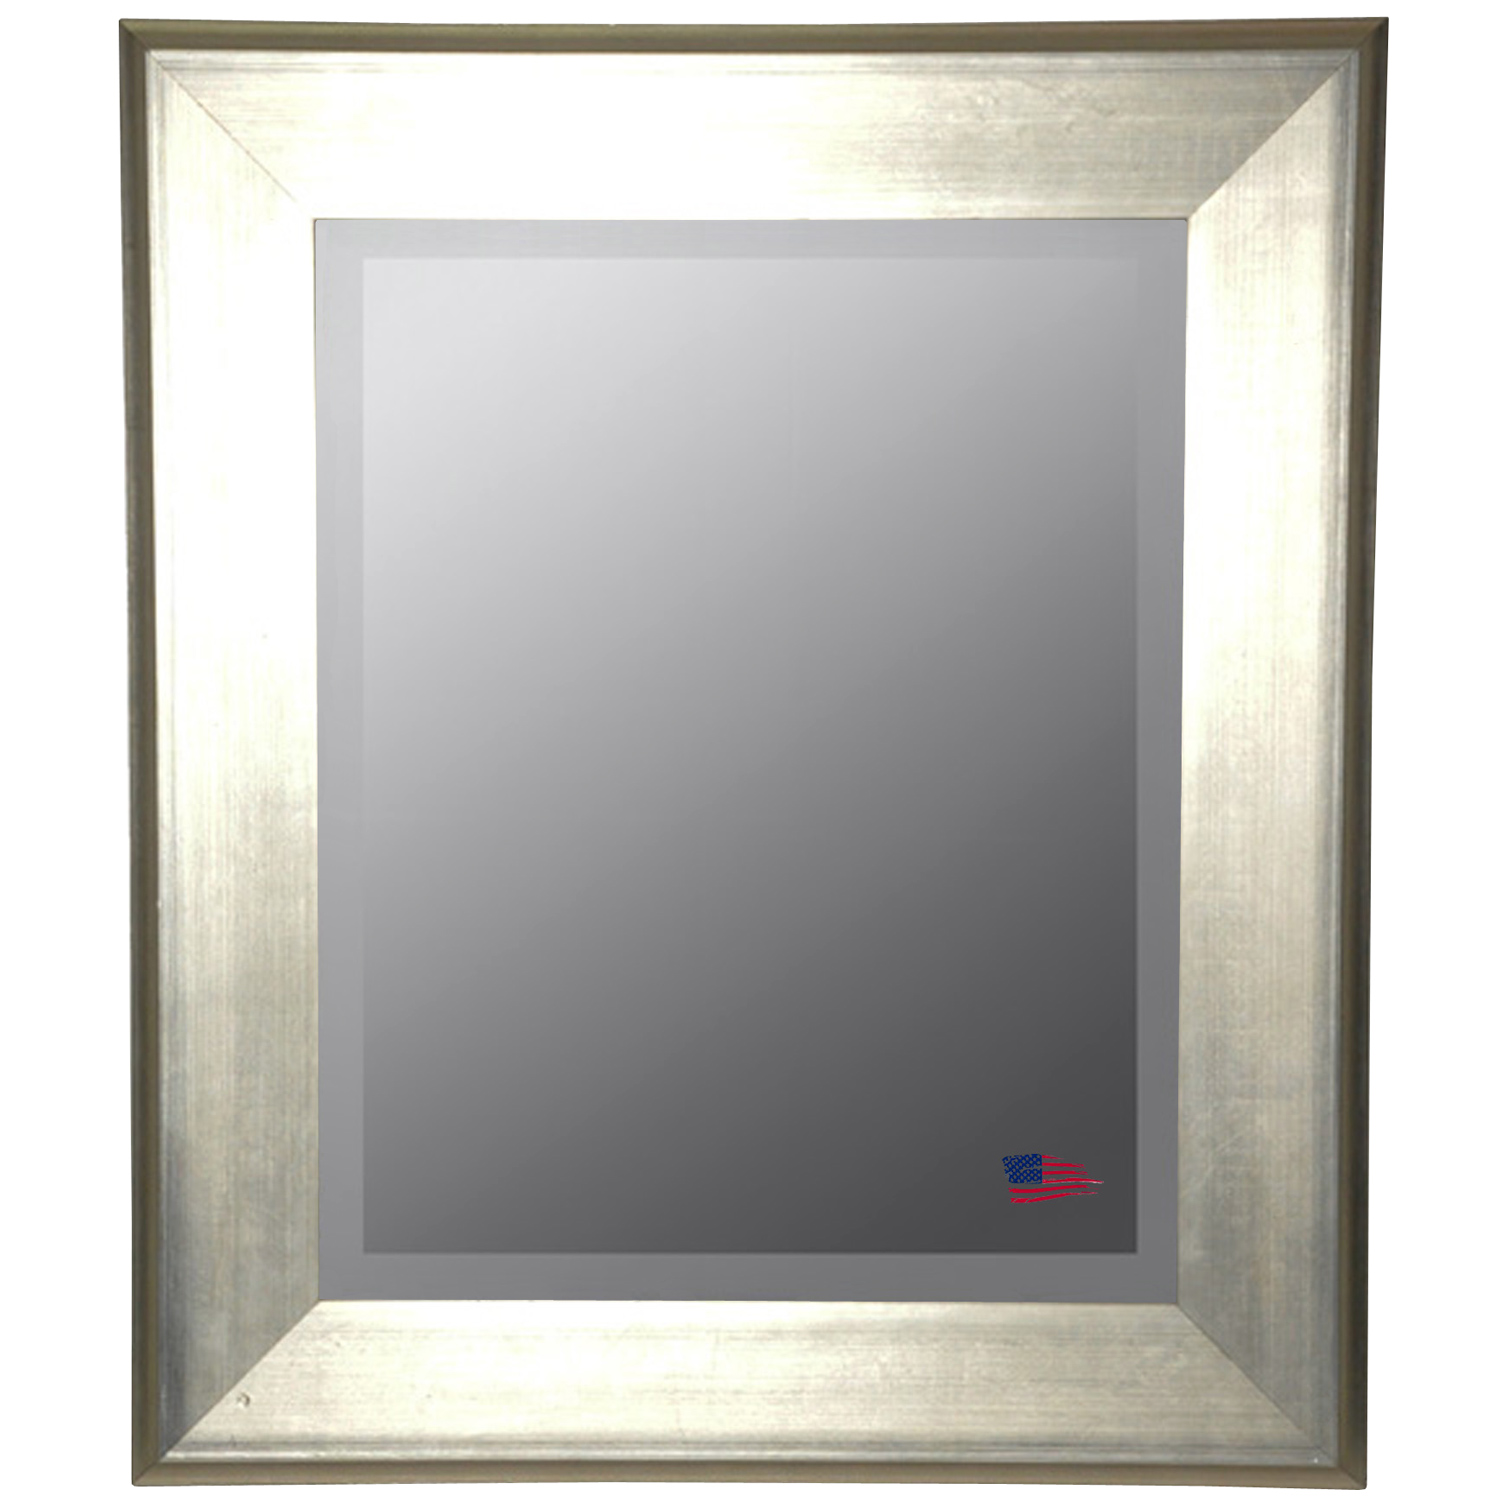 Wall Mirror - Brushed Silver Frame, Beveled Glass - RAY-R004